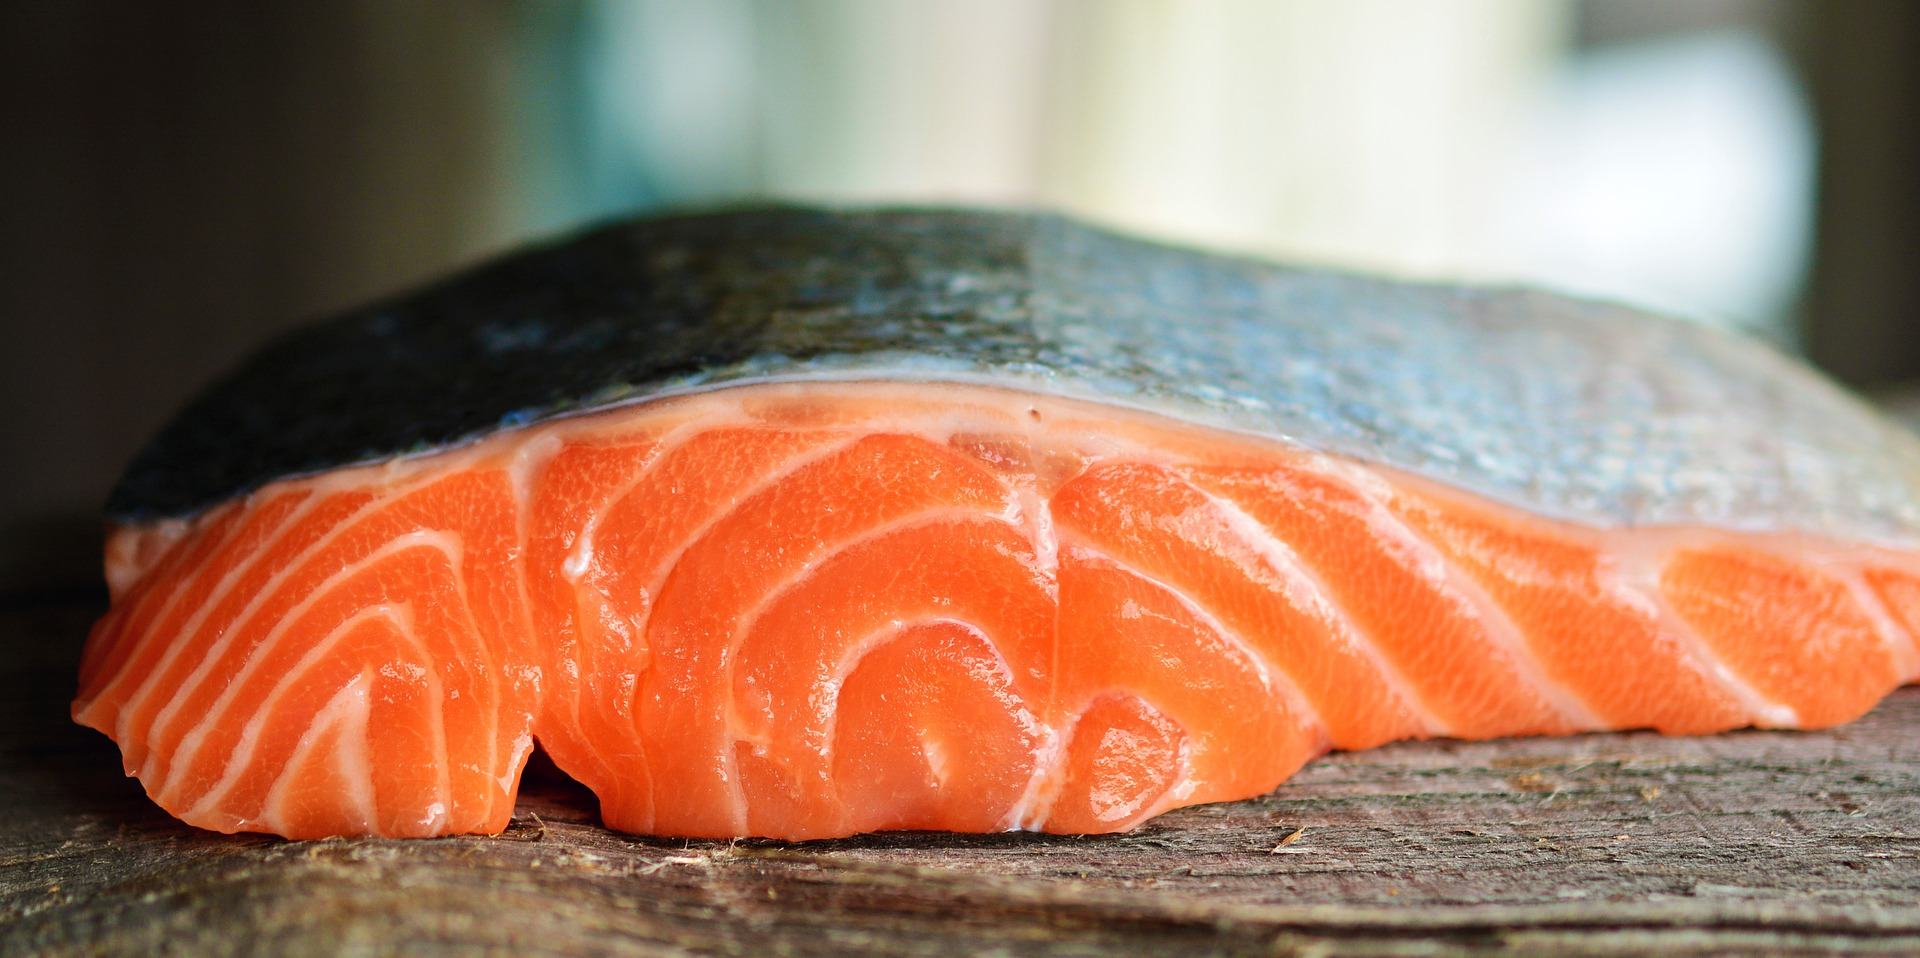 Photo of a salmon fillet